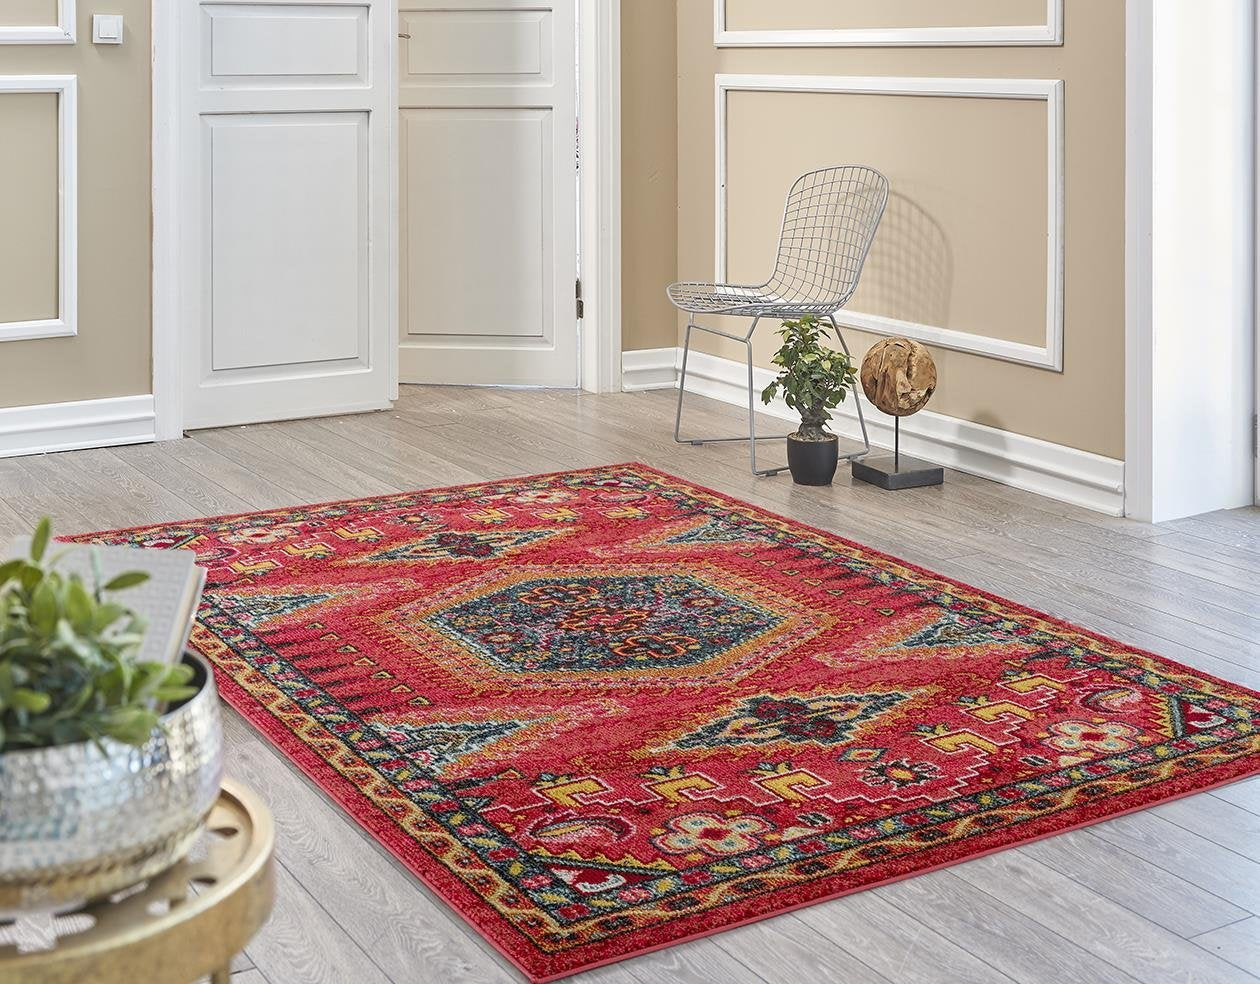 Red South Western Oriental Cheap Area Rugs New 5x8 8x11 Bargain